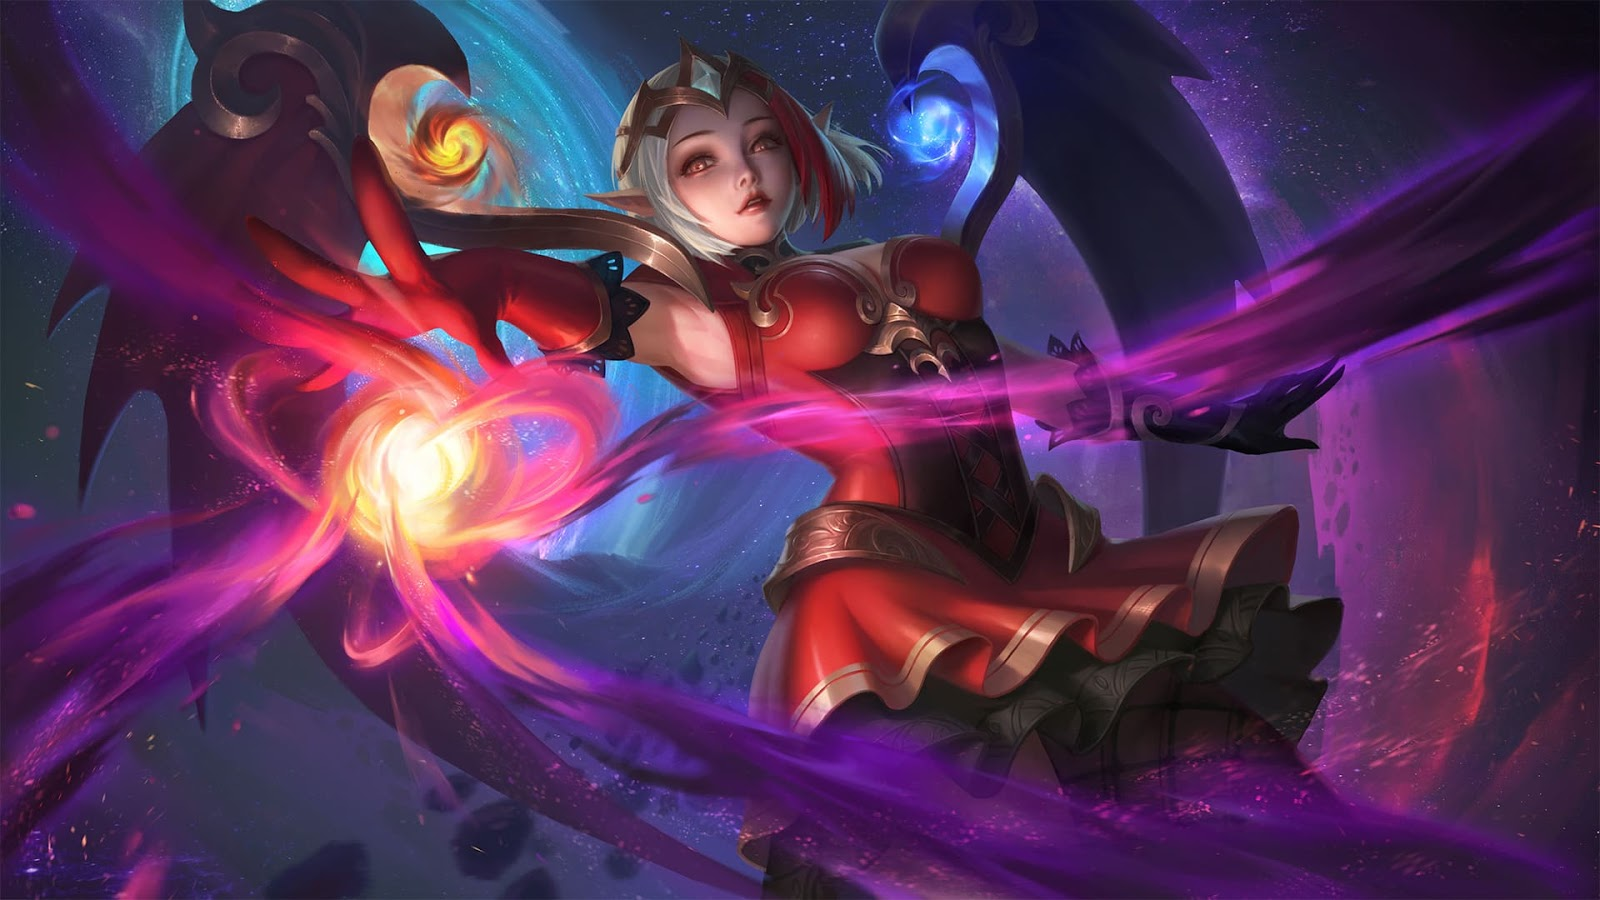 Wallpaper Lunox Bloody Mary Skin Mobile Legends Full HD for PC